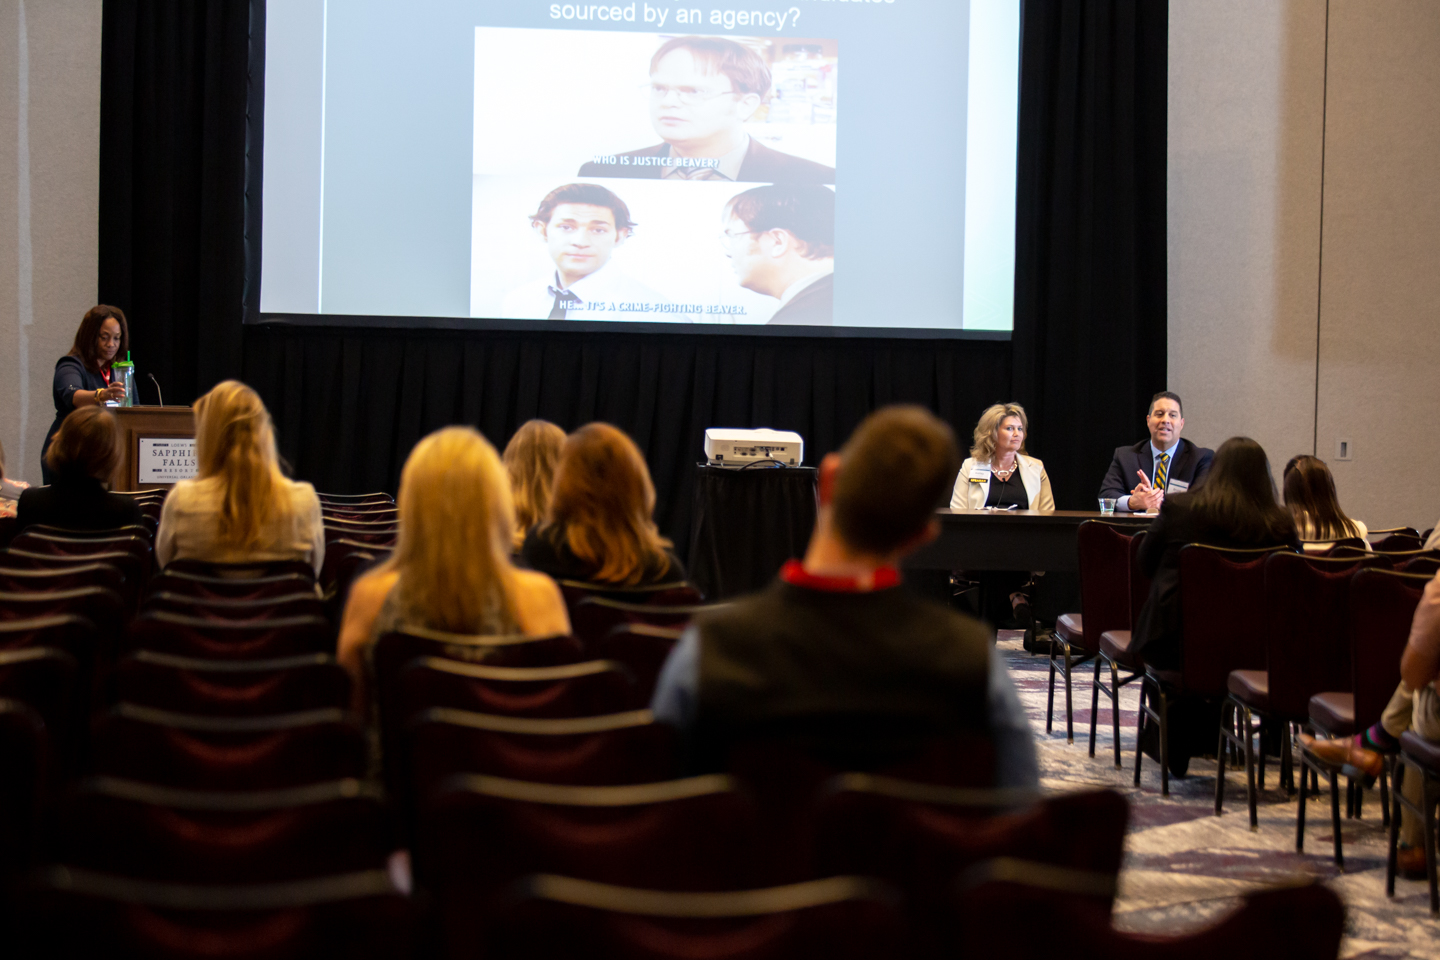 AAPPR-Conference-Expo-Professional-Event-Photography-Photographer-Orlando-presenting-33.jpg